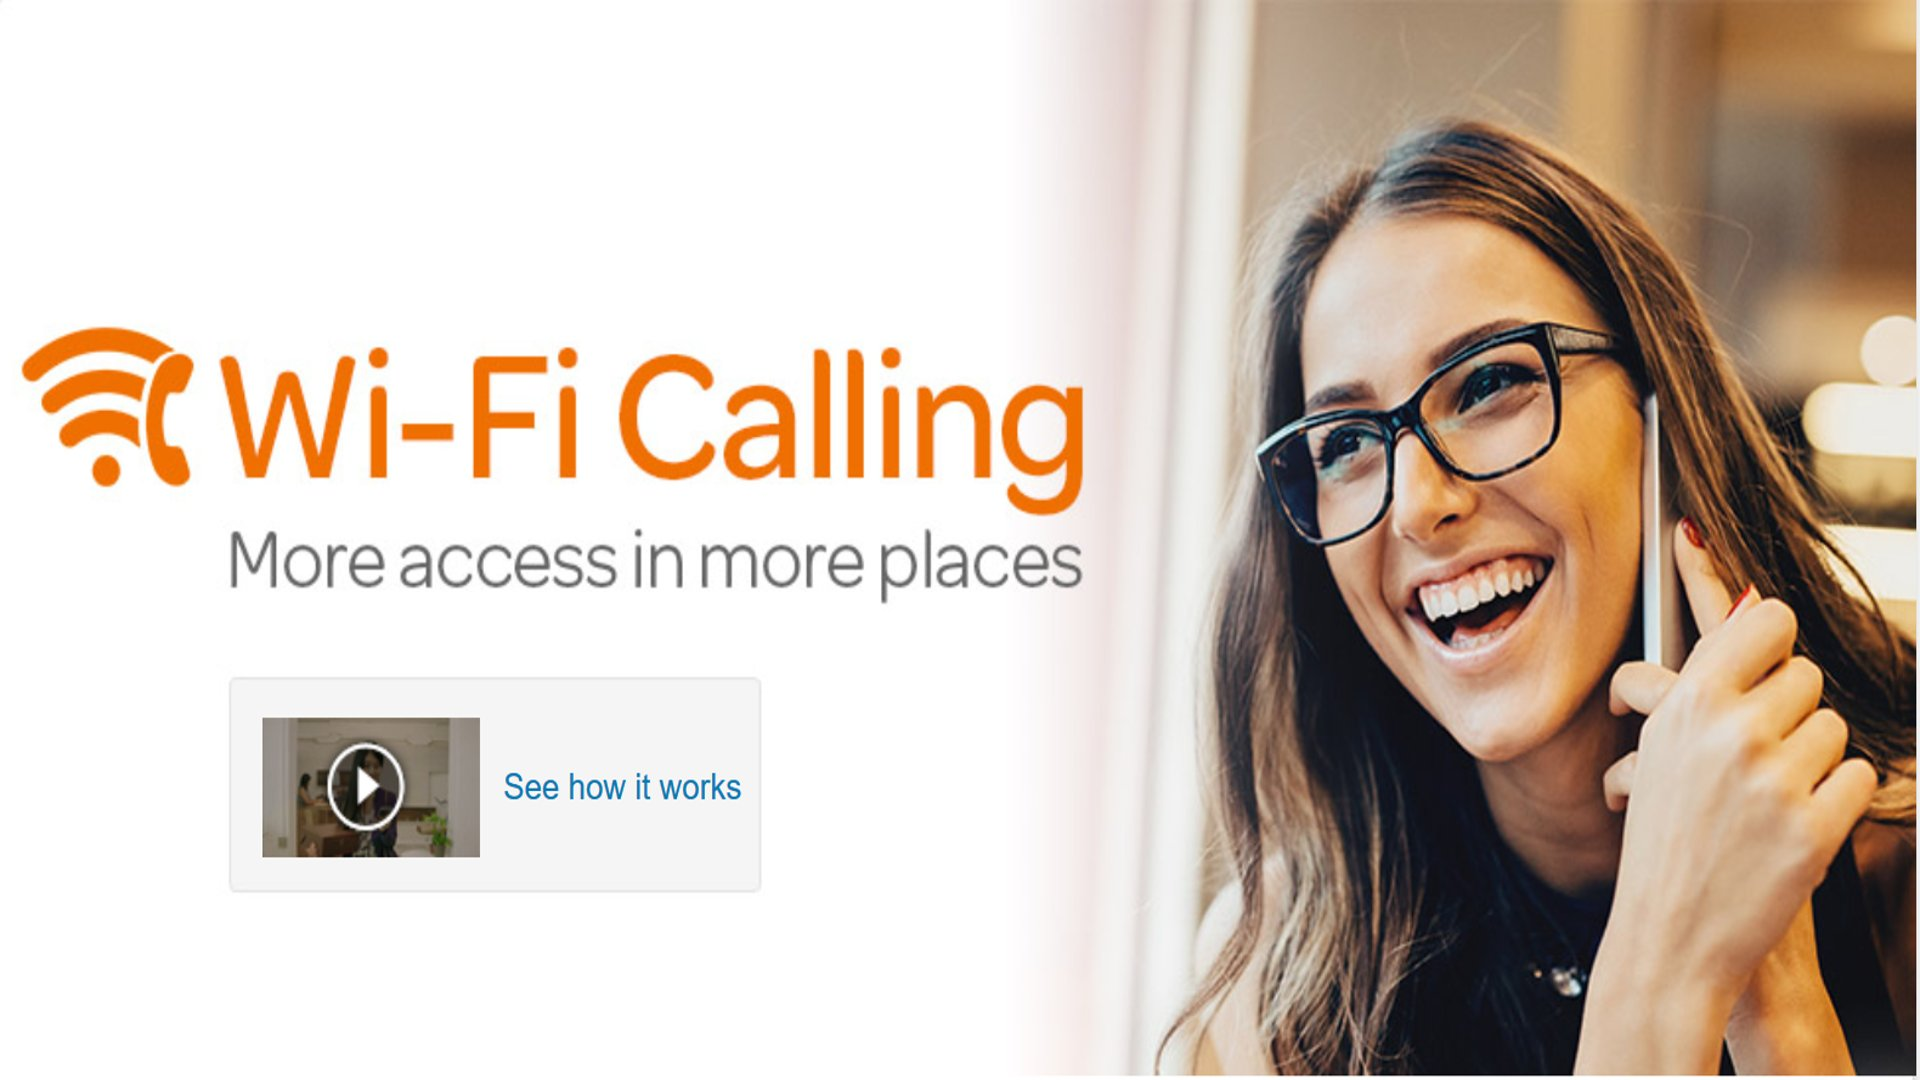 AT&T Wi-Fi Calling